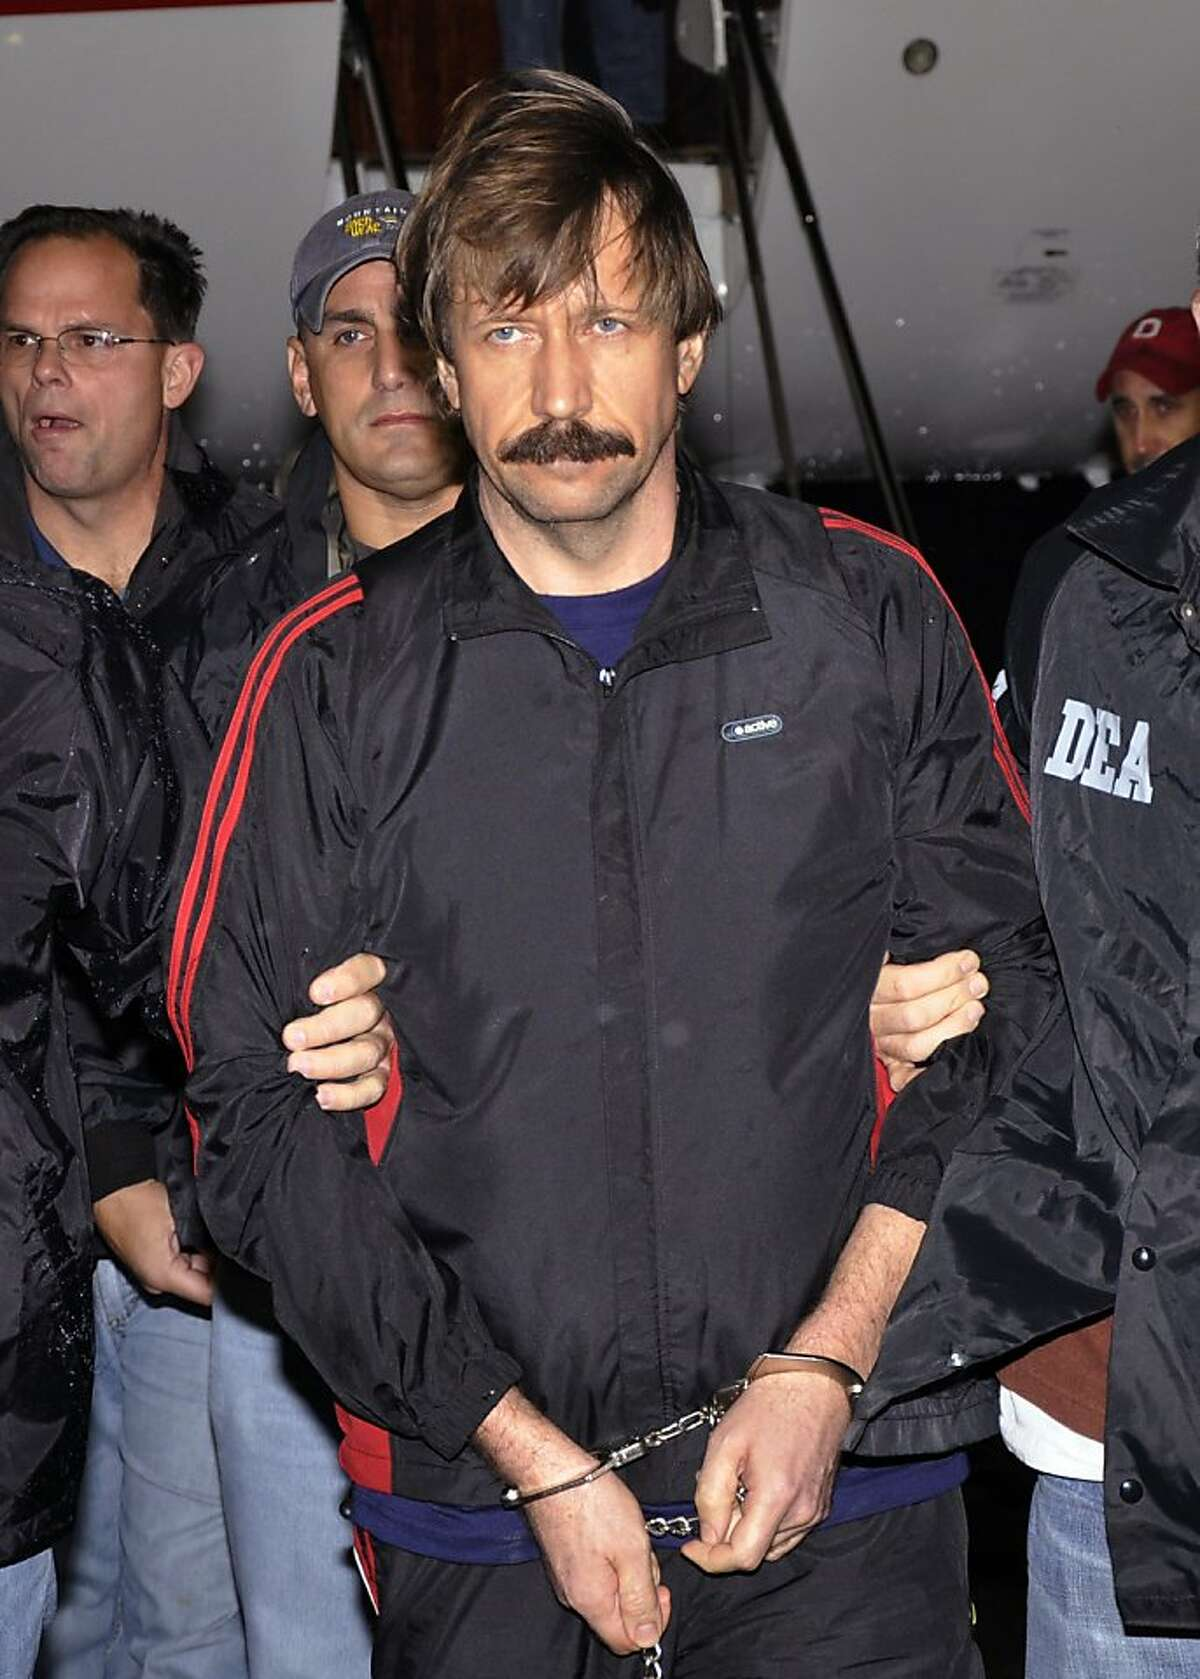 FILE - This Nov. 16, 2010, file photo, provided by the Drug Enforcement Administration shows Viktor Bout being led off a flight from Bangkok to New York during his extradition to face trial on charges of transporting tons of weapons that inflamed violence across the world's war zones. A jury in New York found the Russian arms dealer guilty on all counts Wednesday, Nov. 2, 2011. (AP Photo/Drug Enforcement Administration, File)